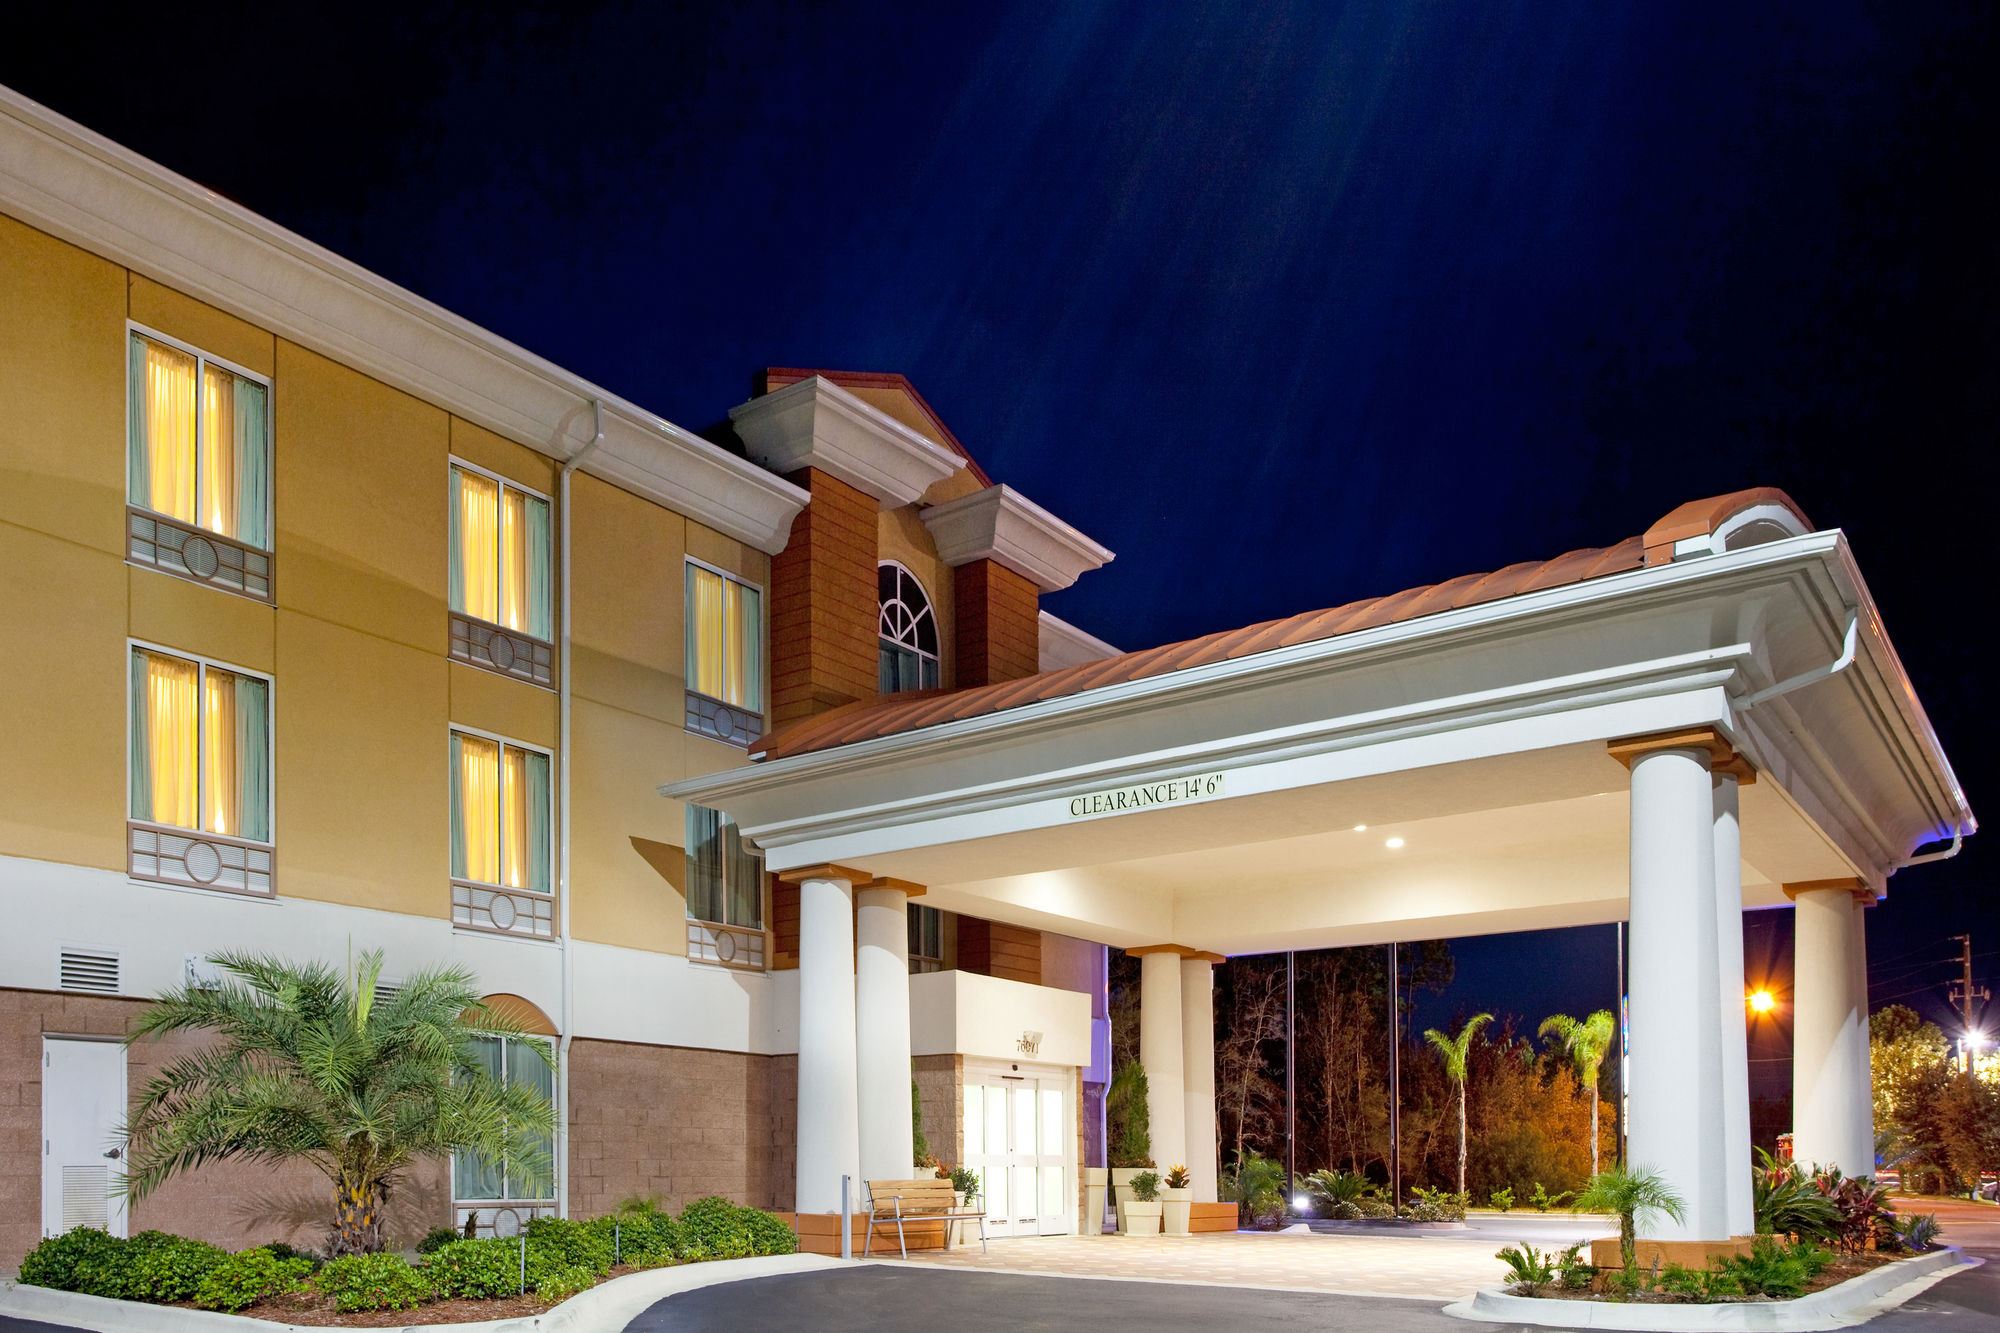 Holiday Inn Express & Suites Yulee in Yulee, FL